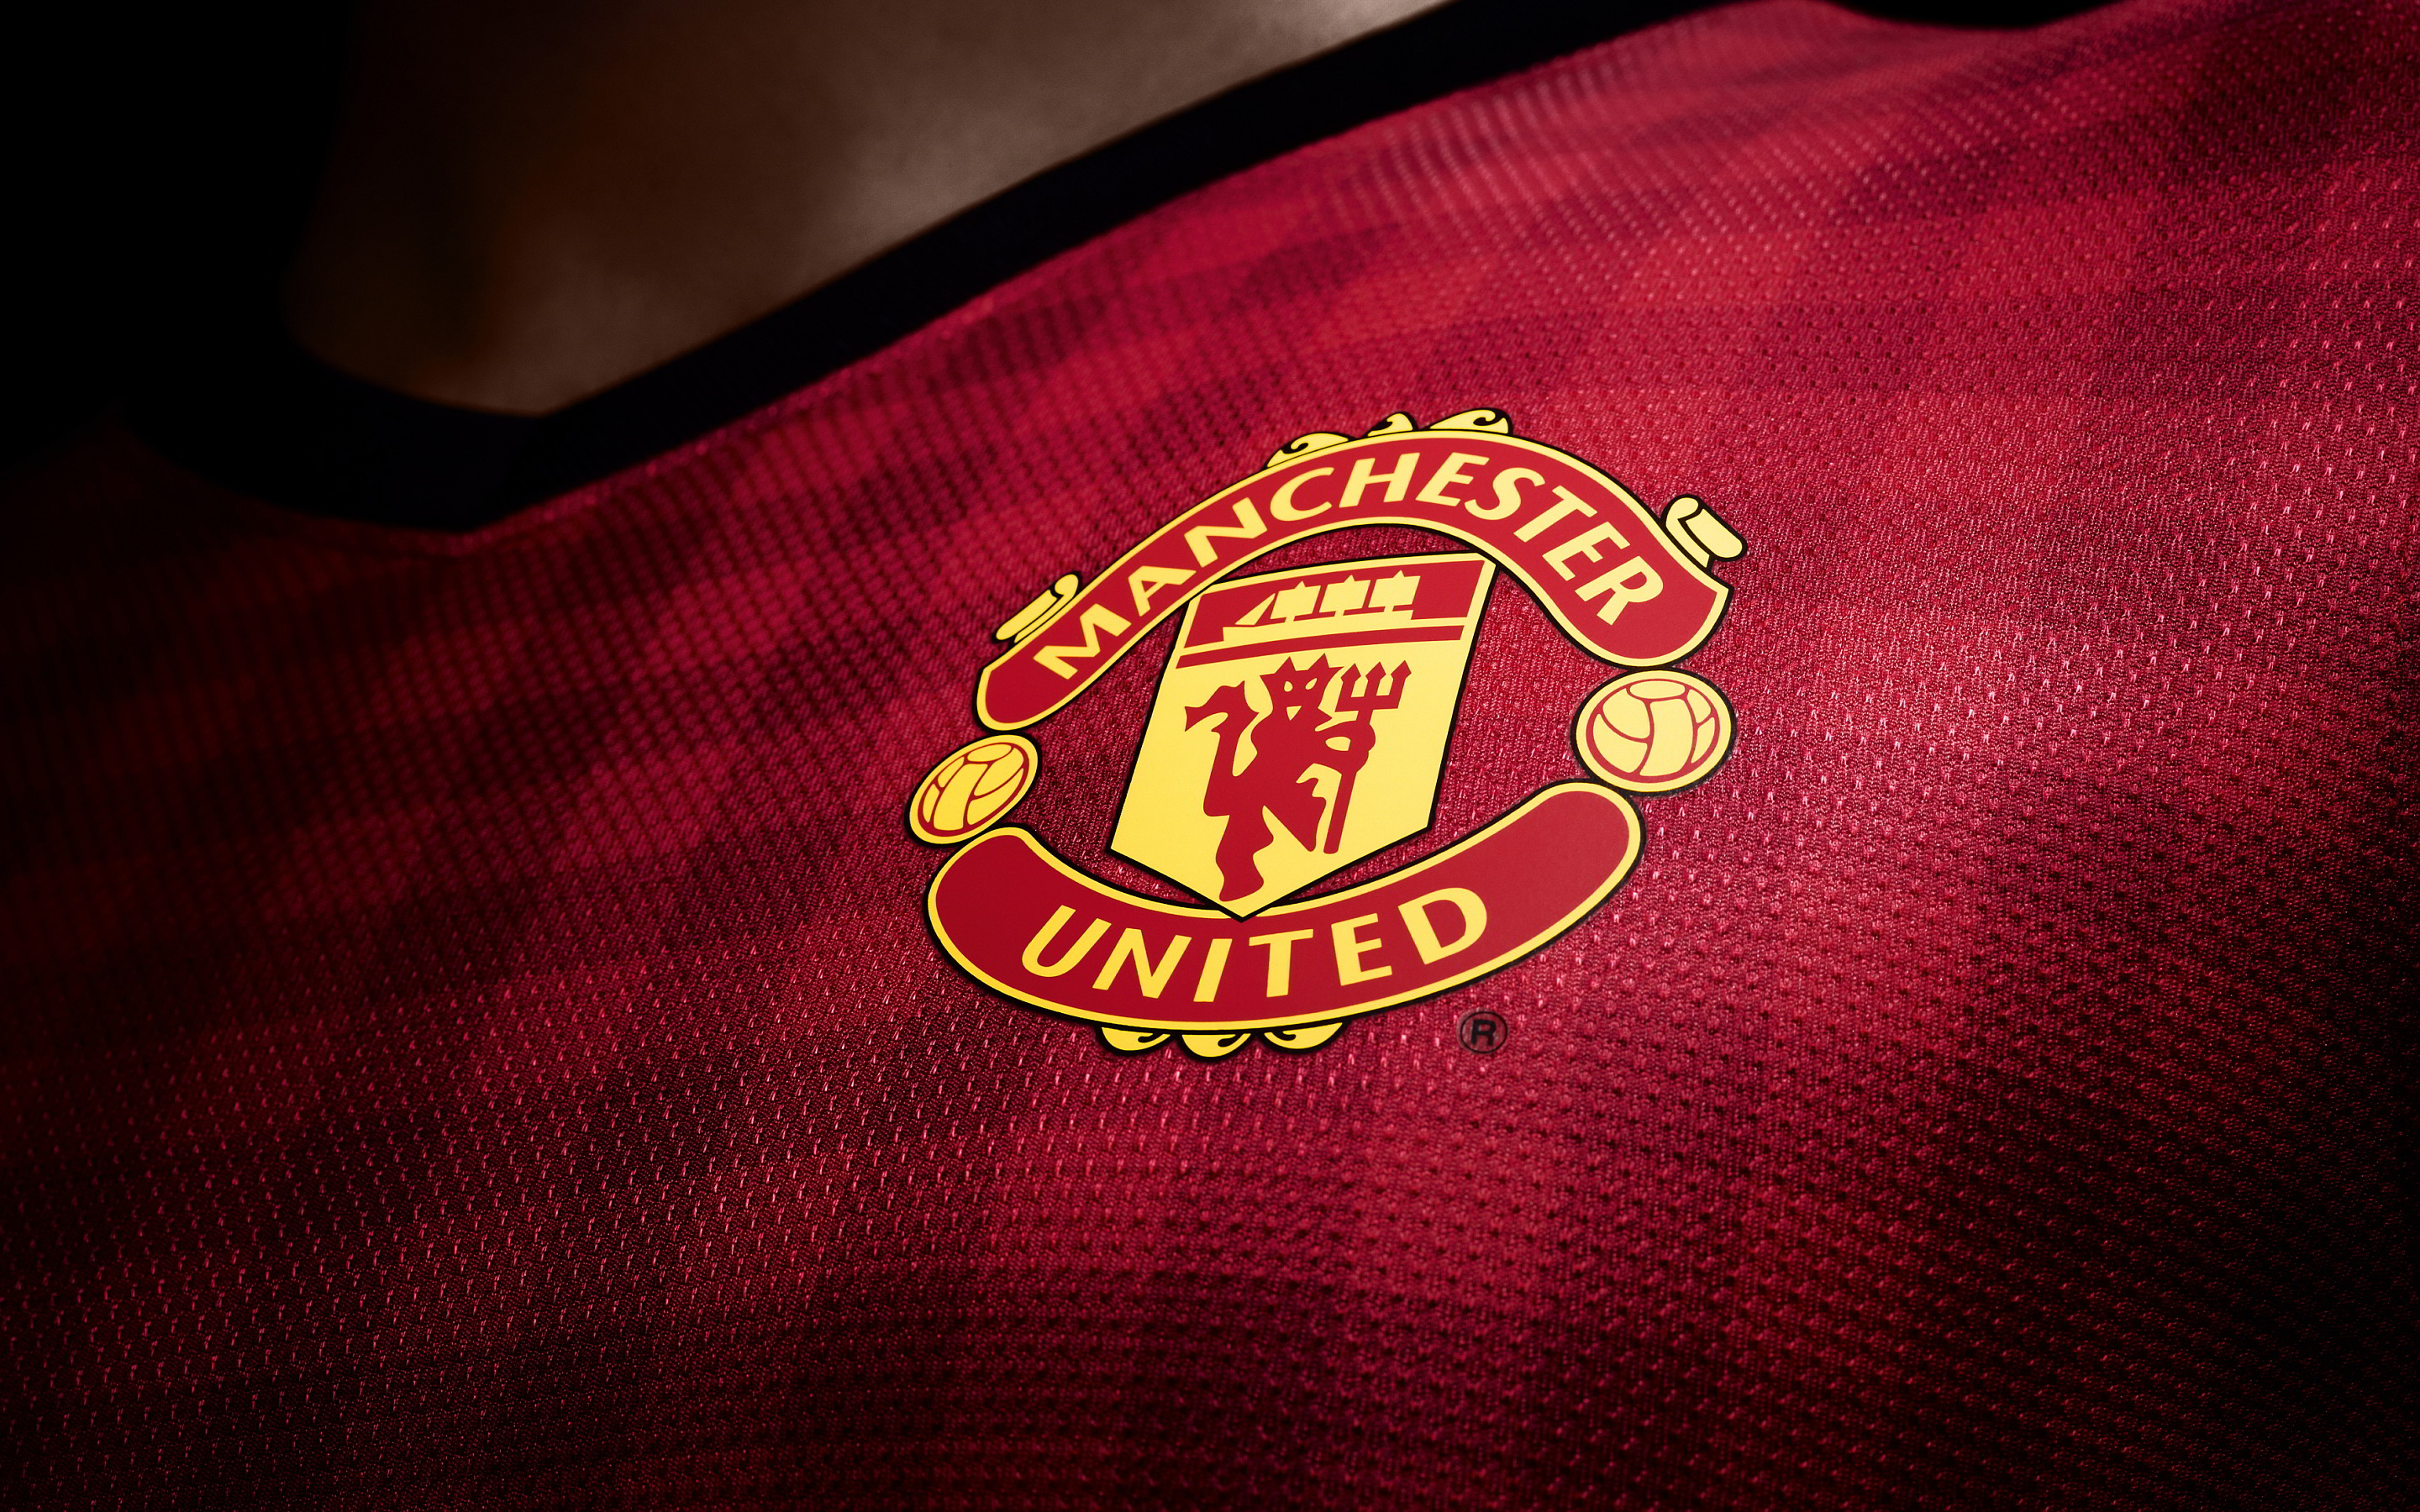 manchester united logo Manchester United Wallpaper HD 2013 32 2880x1800